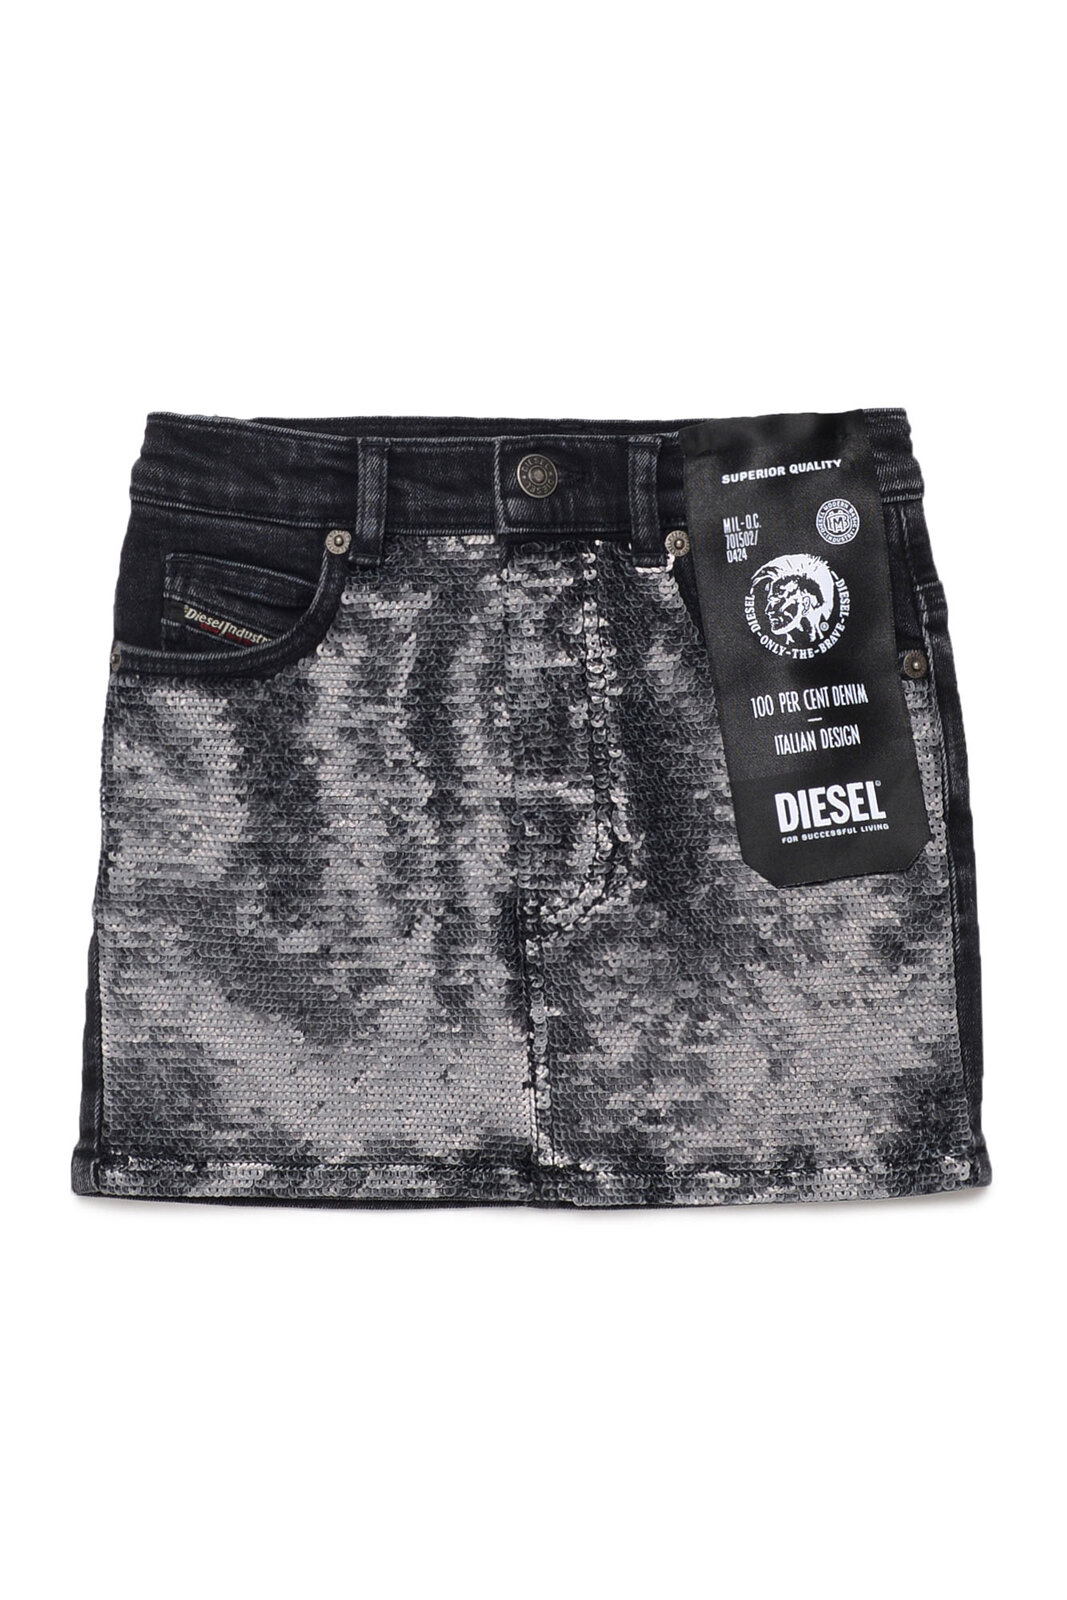 Griri-Sp Skirt - Diesel Kid